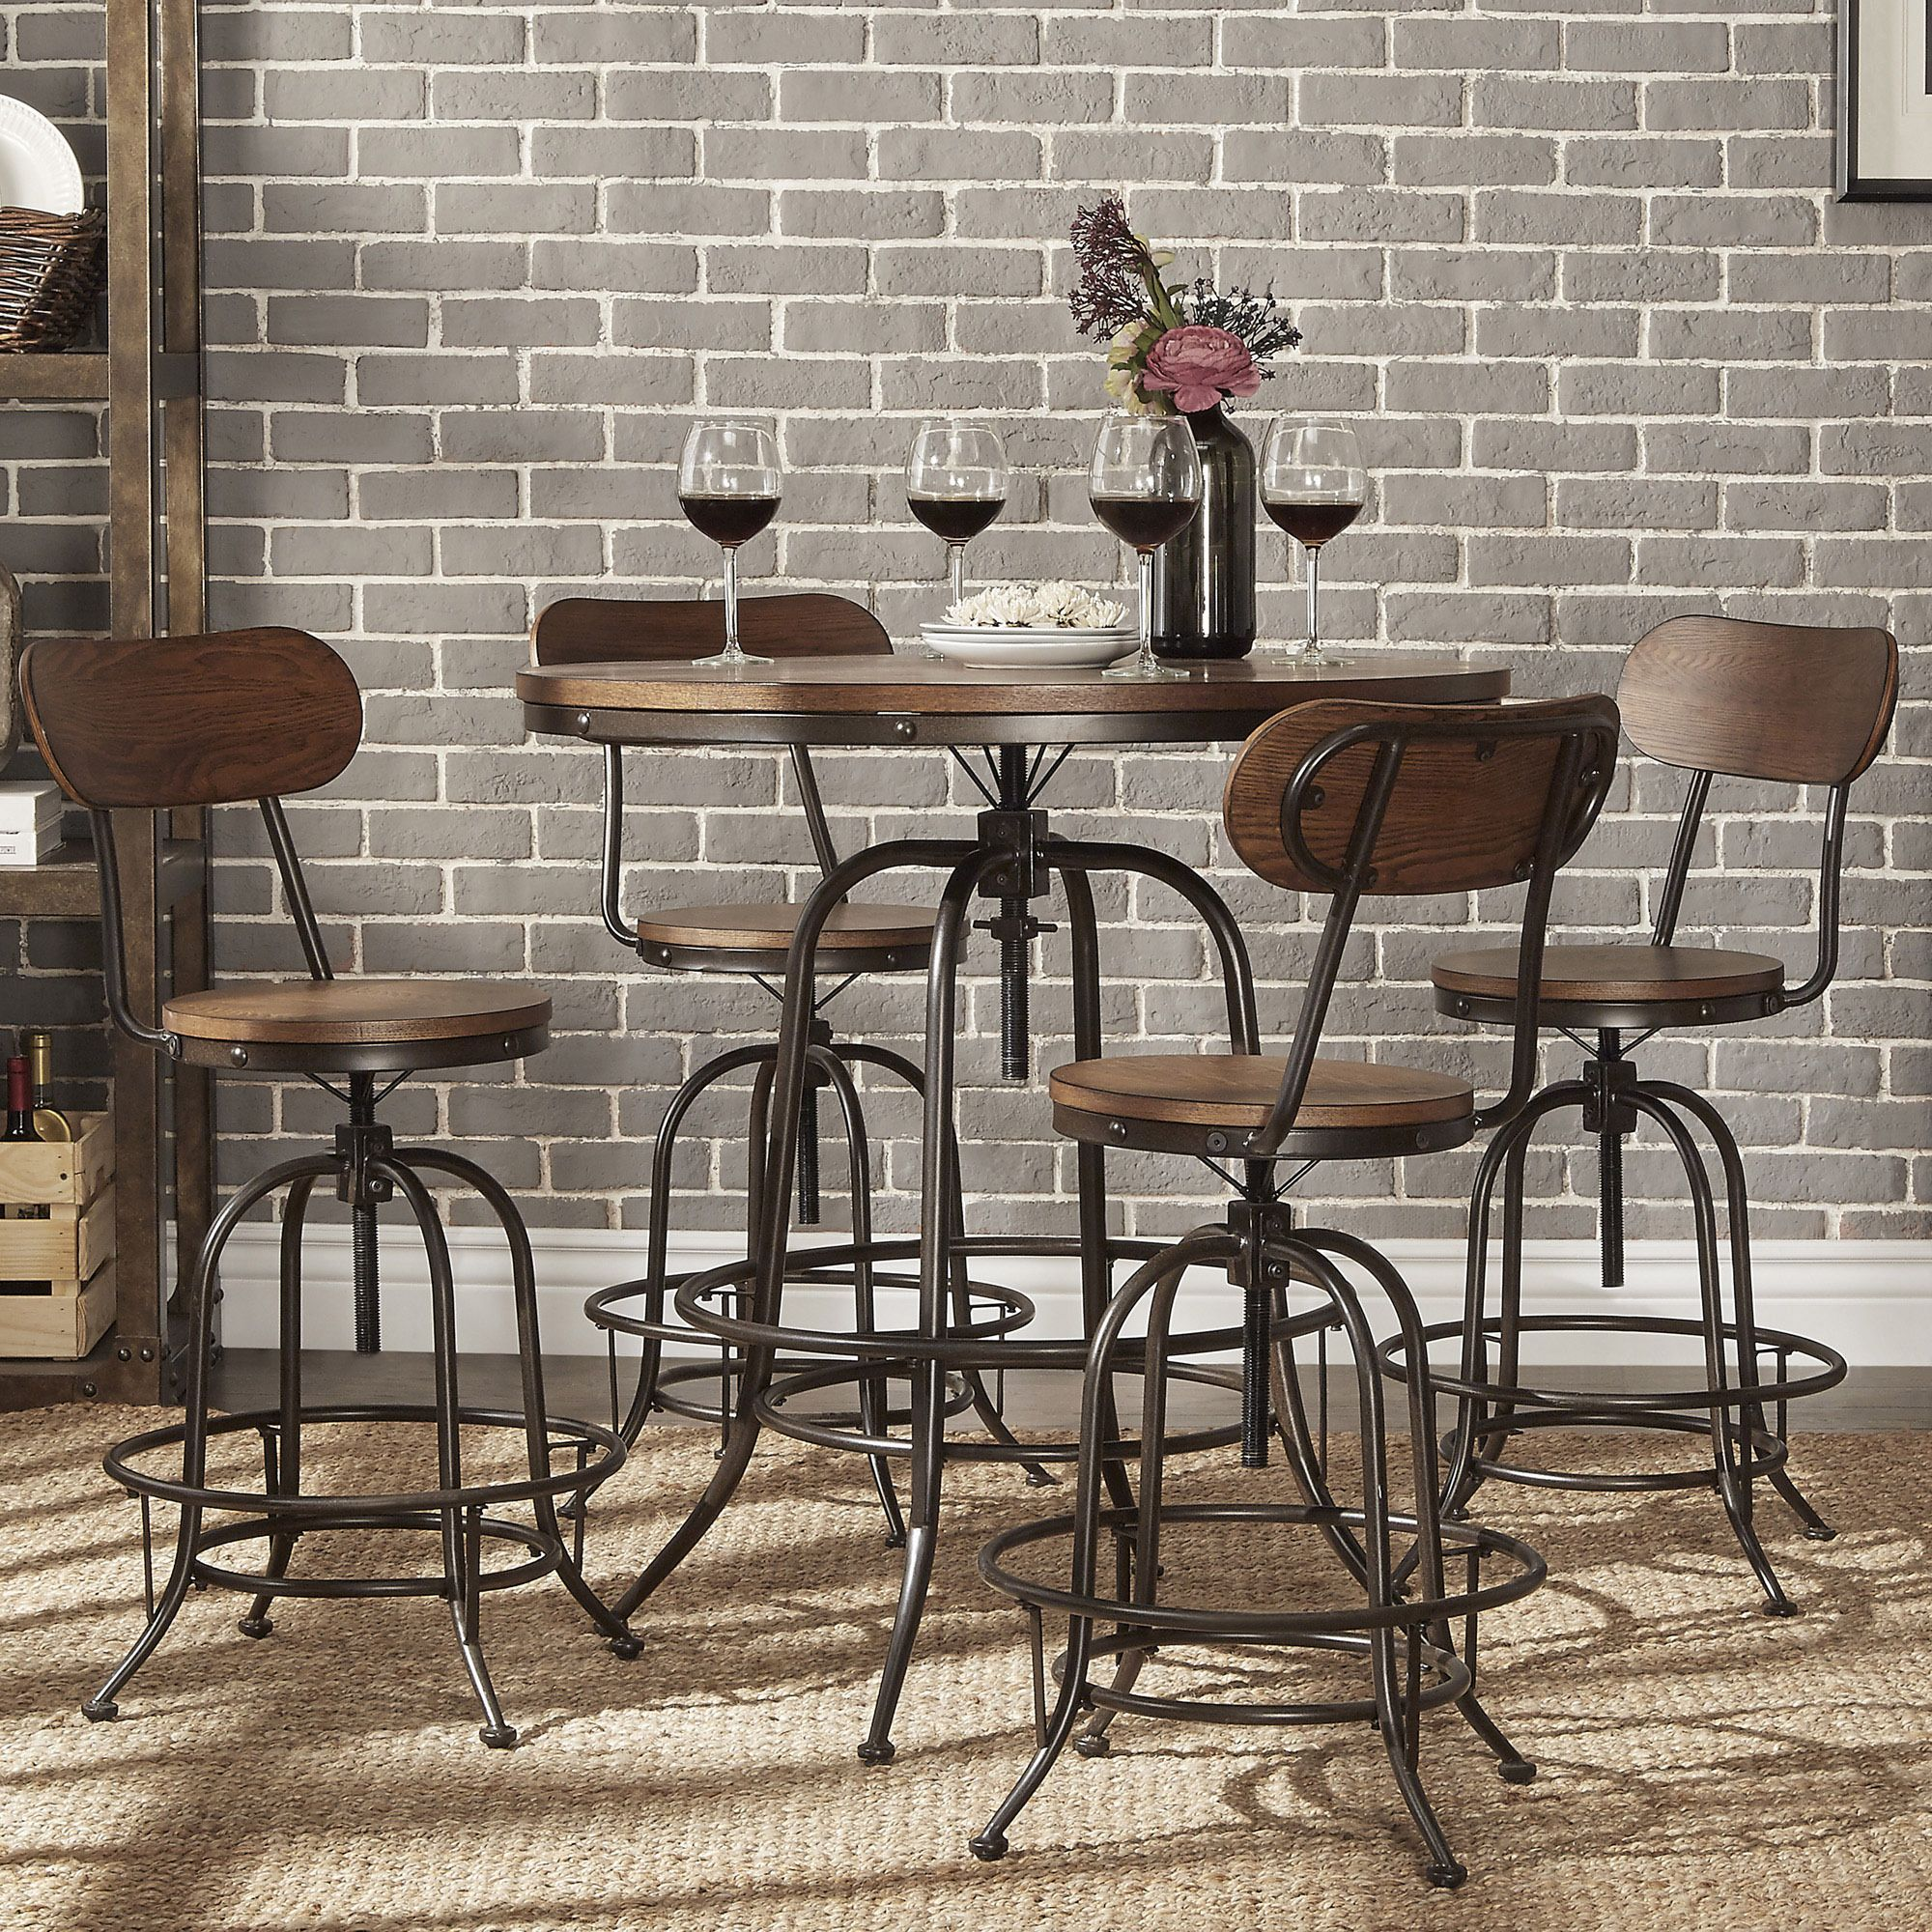 Introduce Simplicity And Transitional Functionality With This Brilliant Industrial Style Dining Room Tables 2018